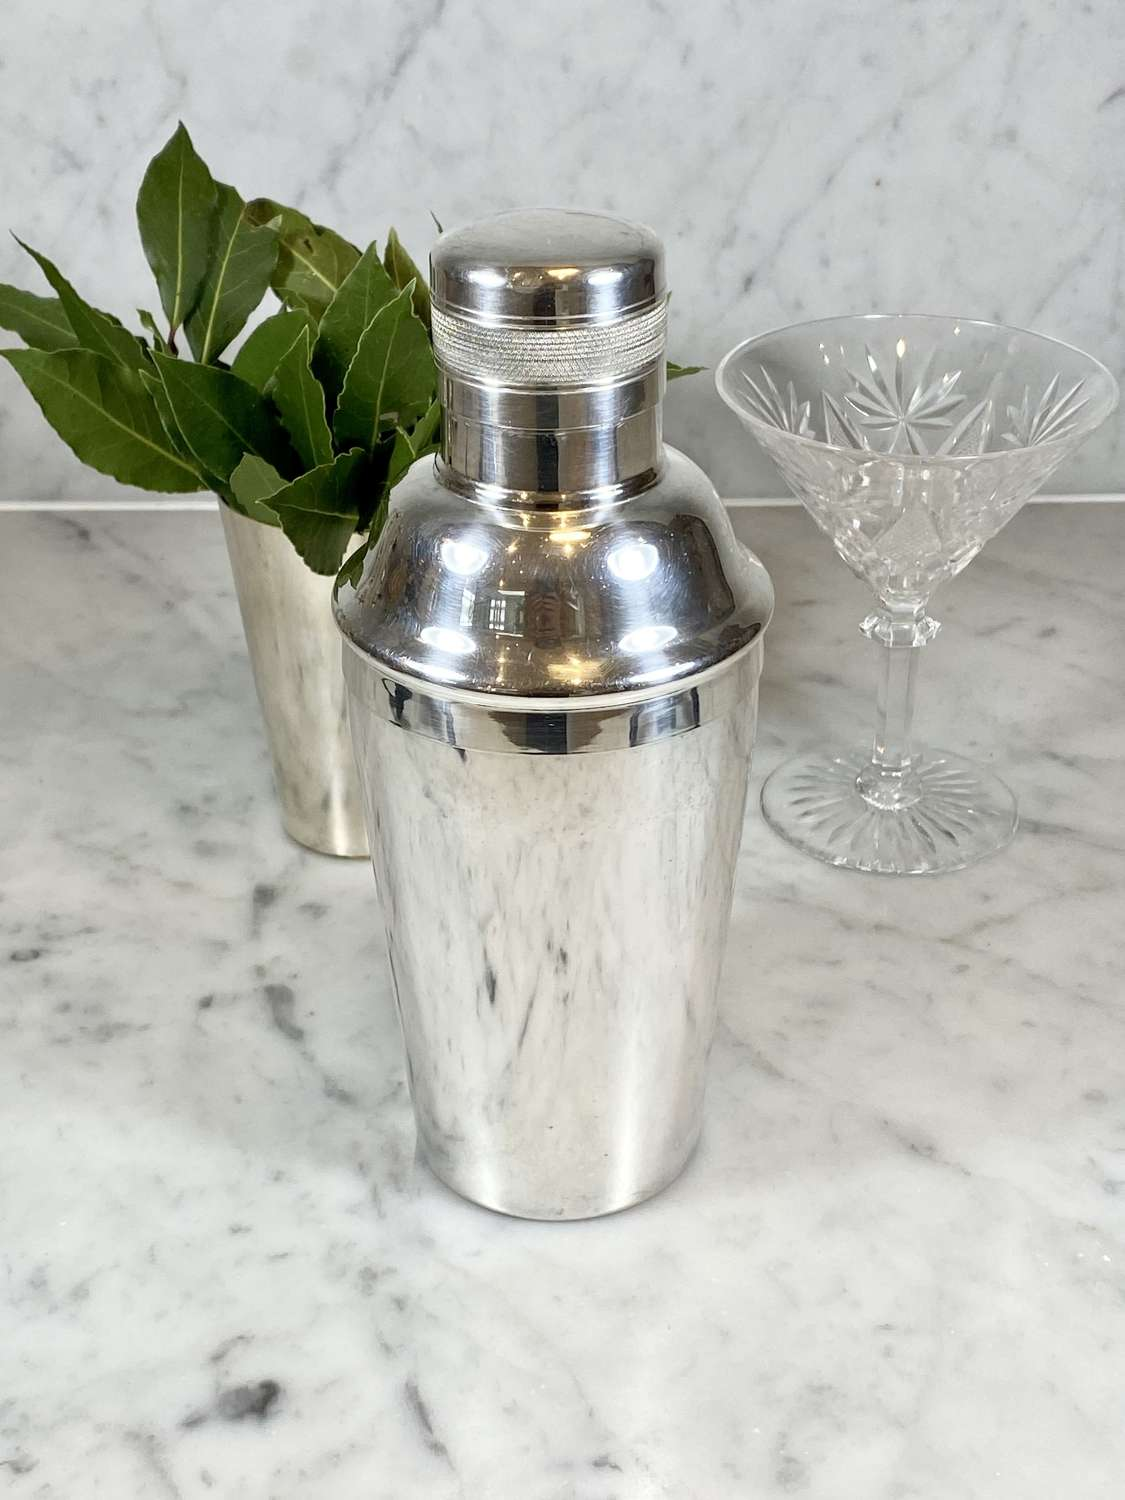 Art Deco silver plated engine turned cocktail shaker by Elkington